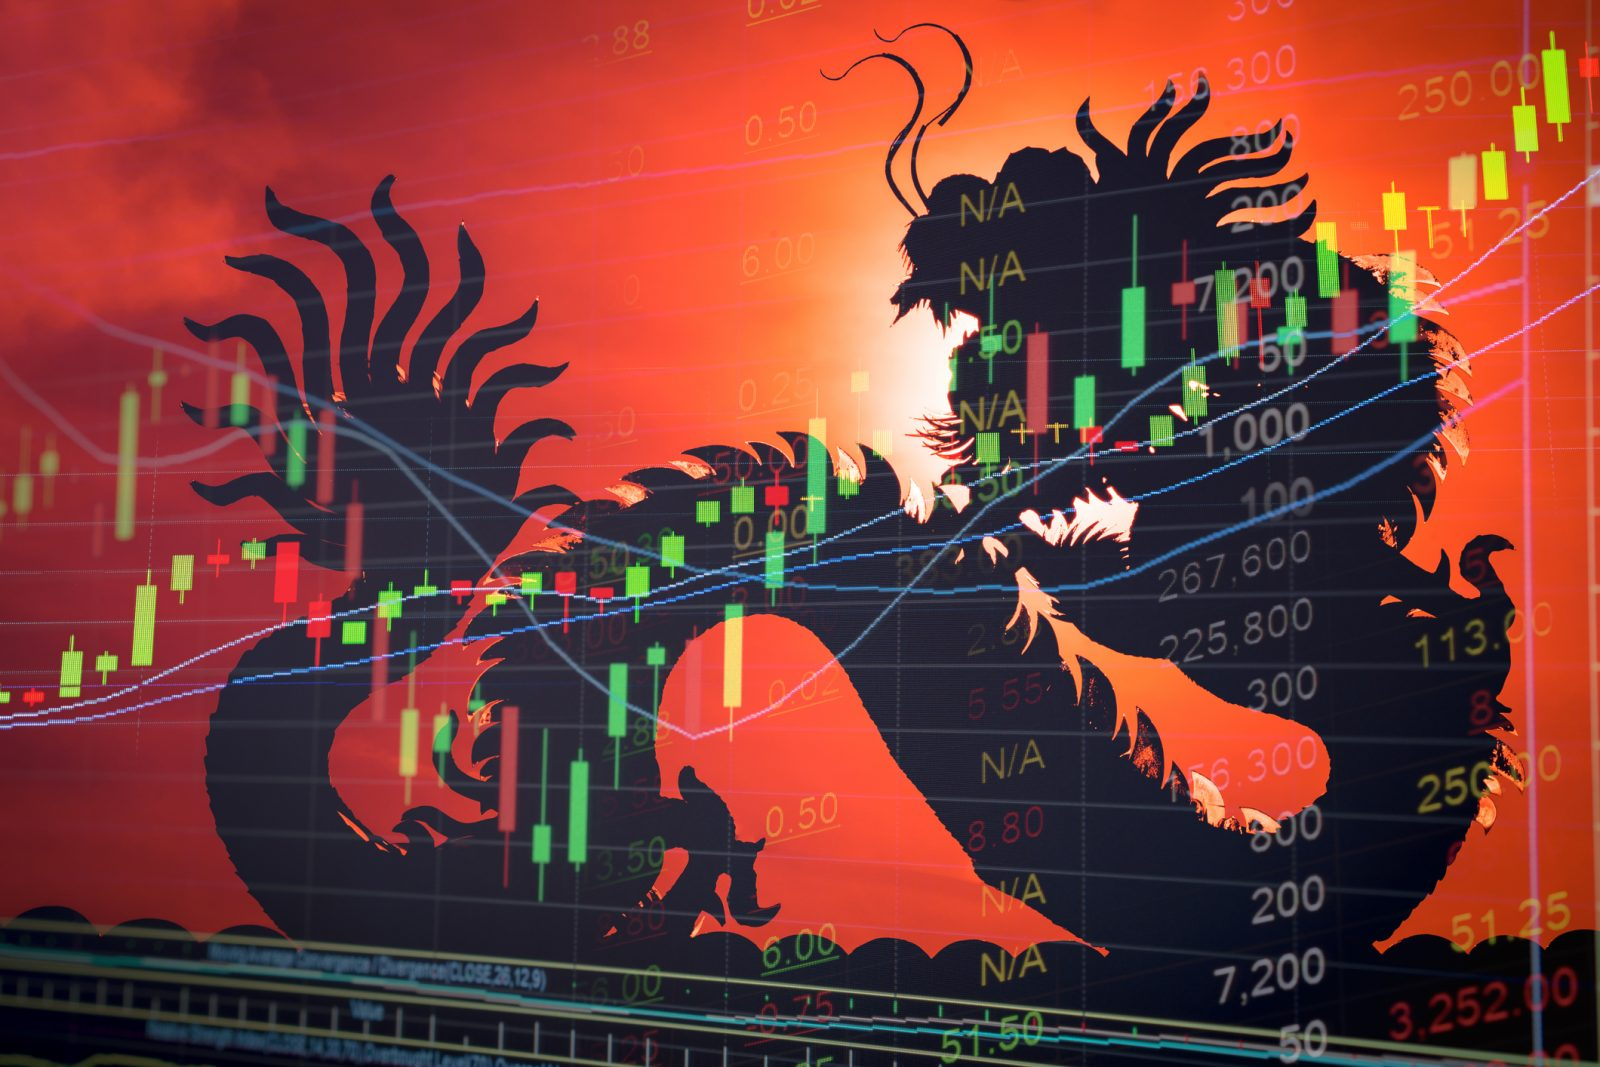 Foreign investors pouring money into China bonds